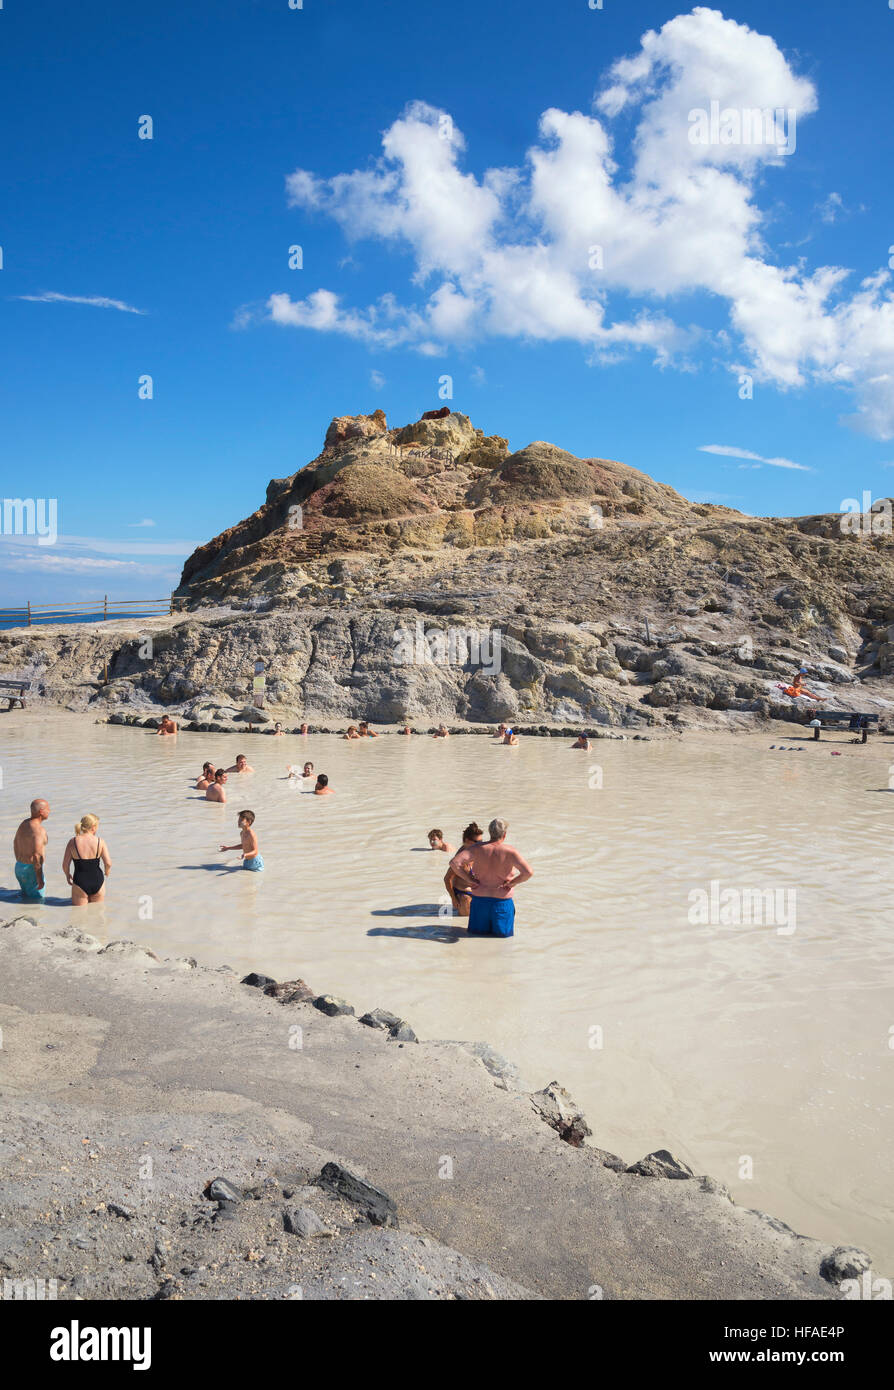 Bathers enjoying the therapeutic benefits of the volcanic mud in the hot spring pool, Vulcano Island, Aeolian Islands, - Stock Image